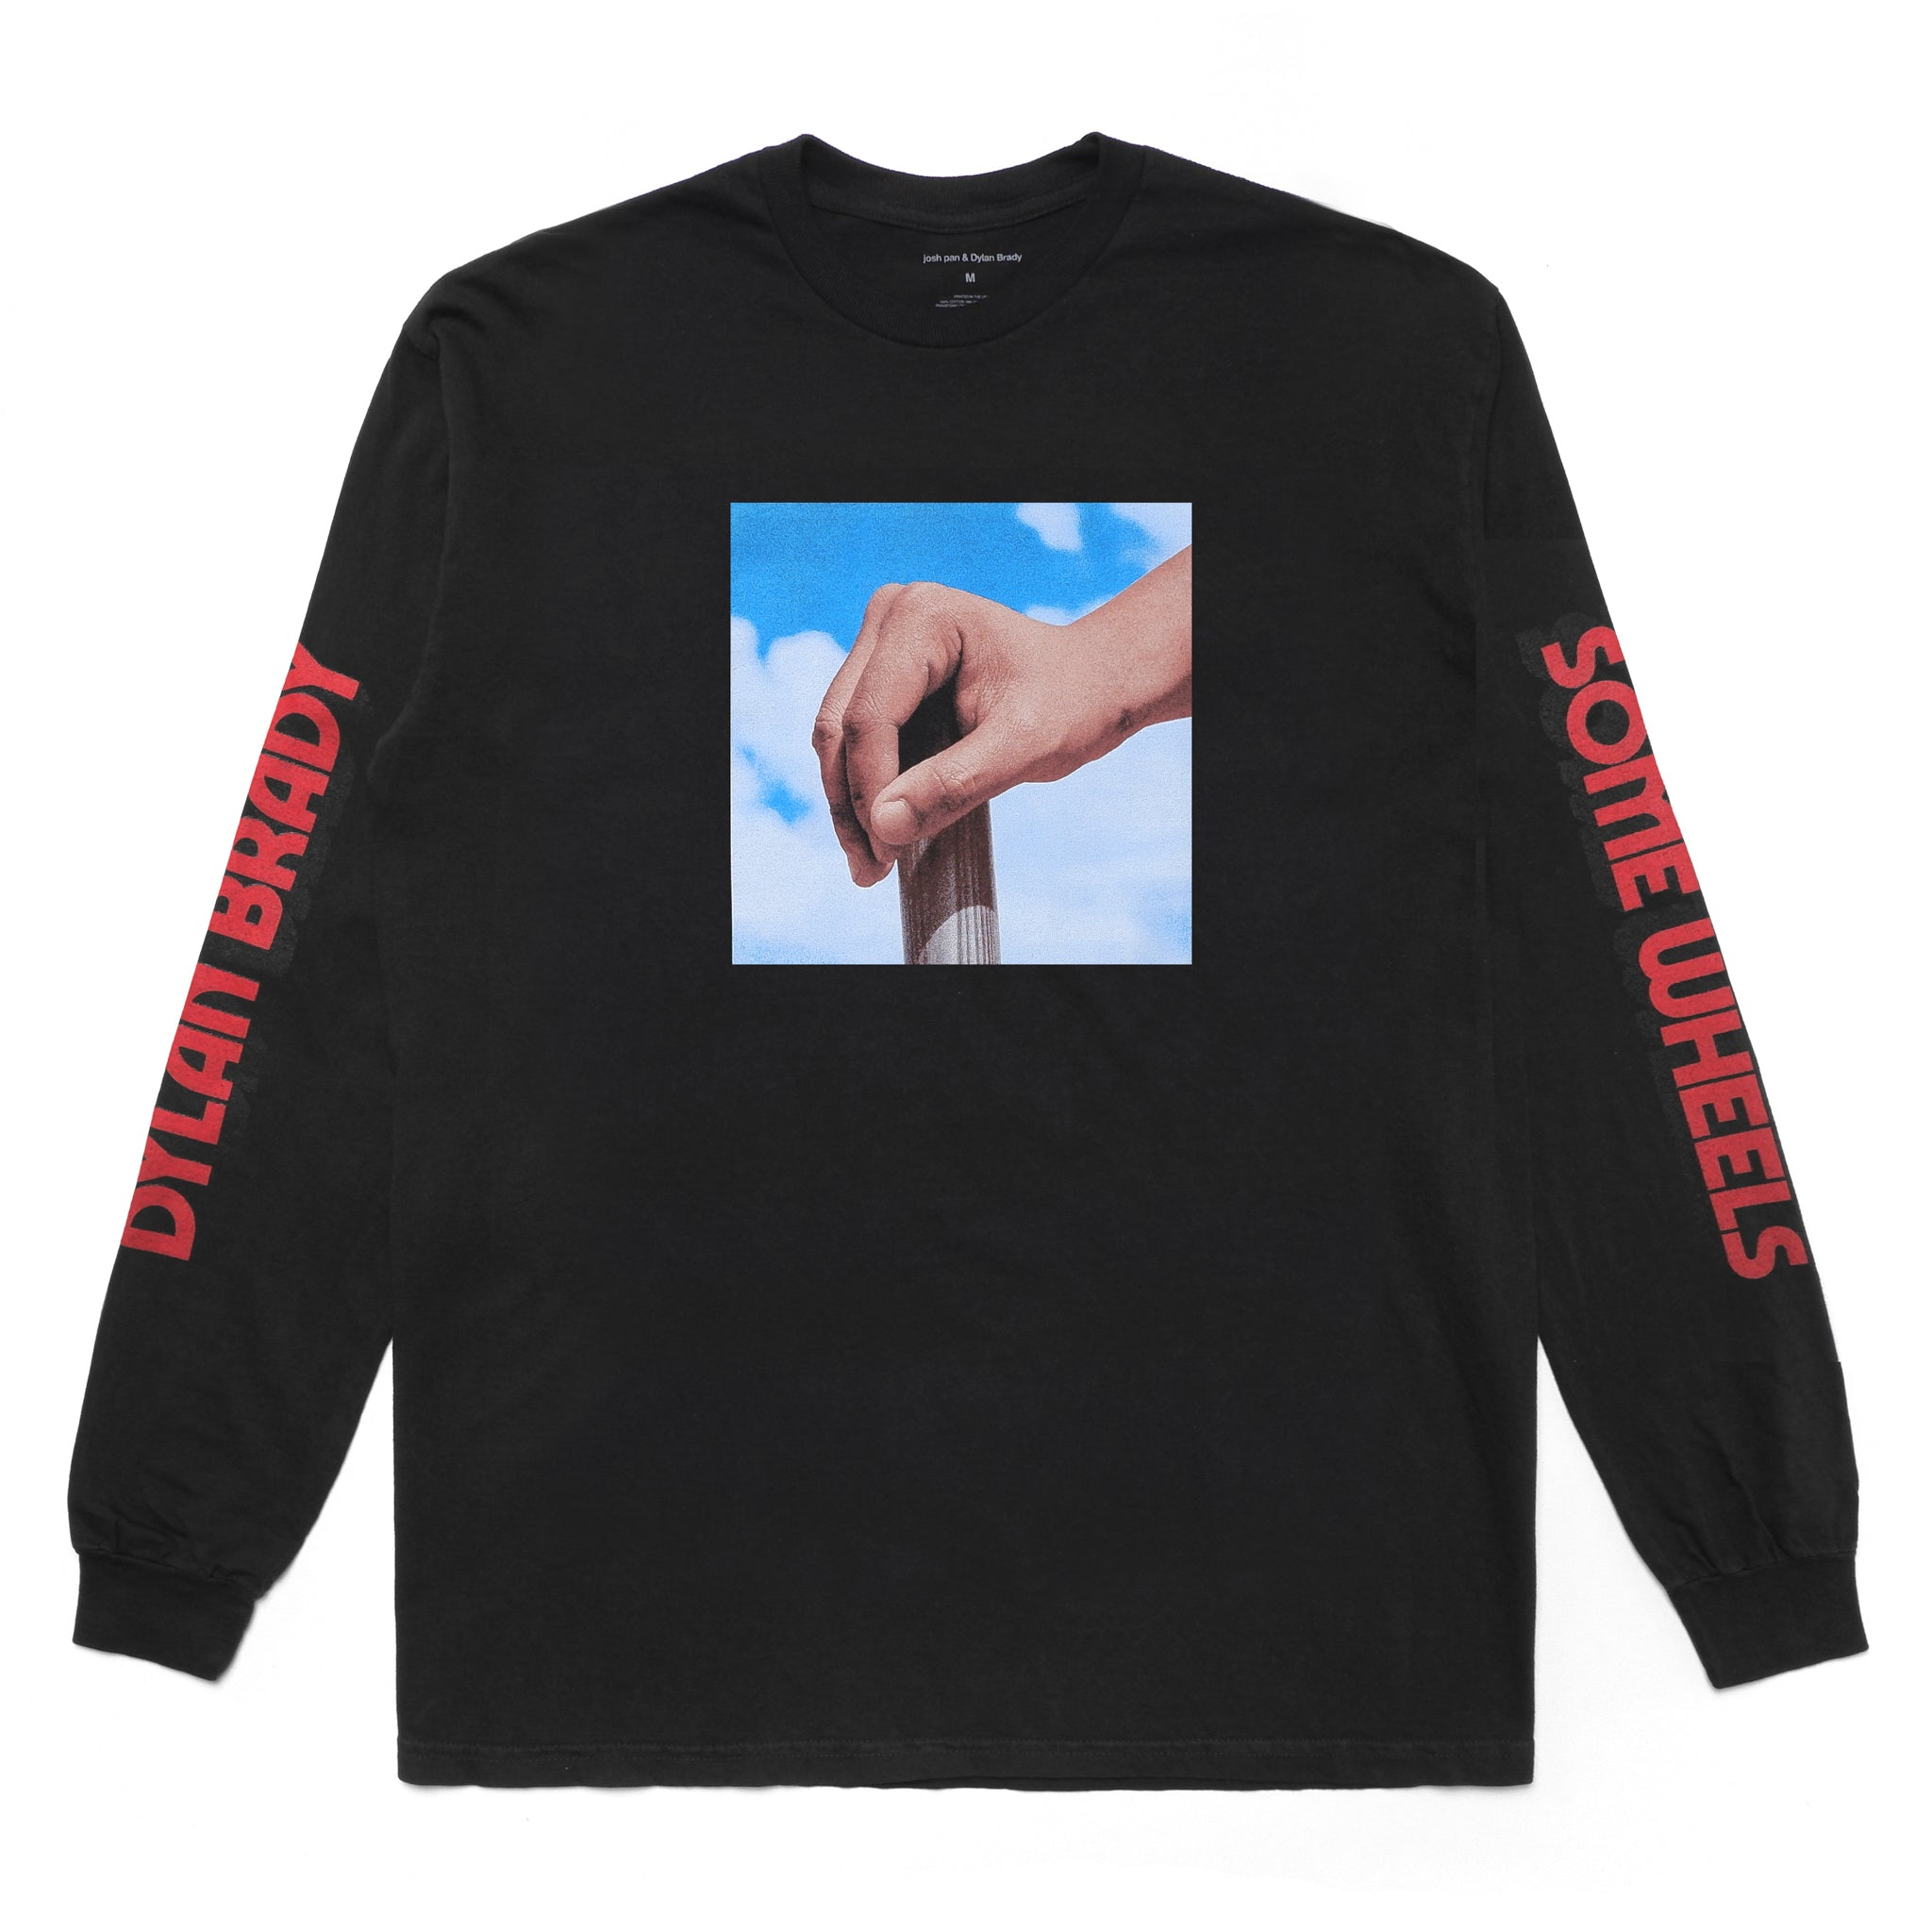 THIS CAR NEEDS SOME WHEELS LONG SLEEVE - BLACK